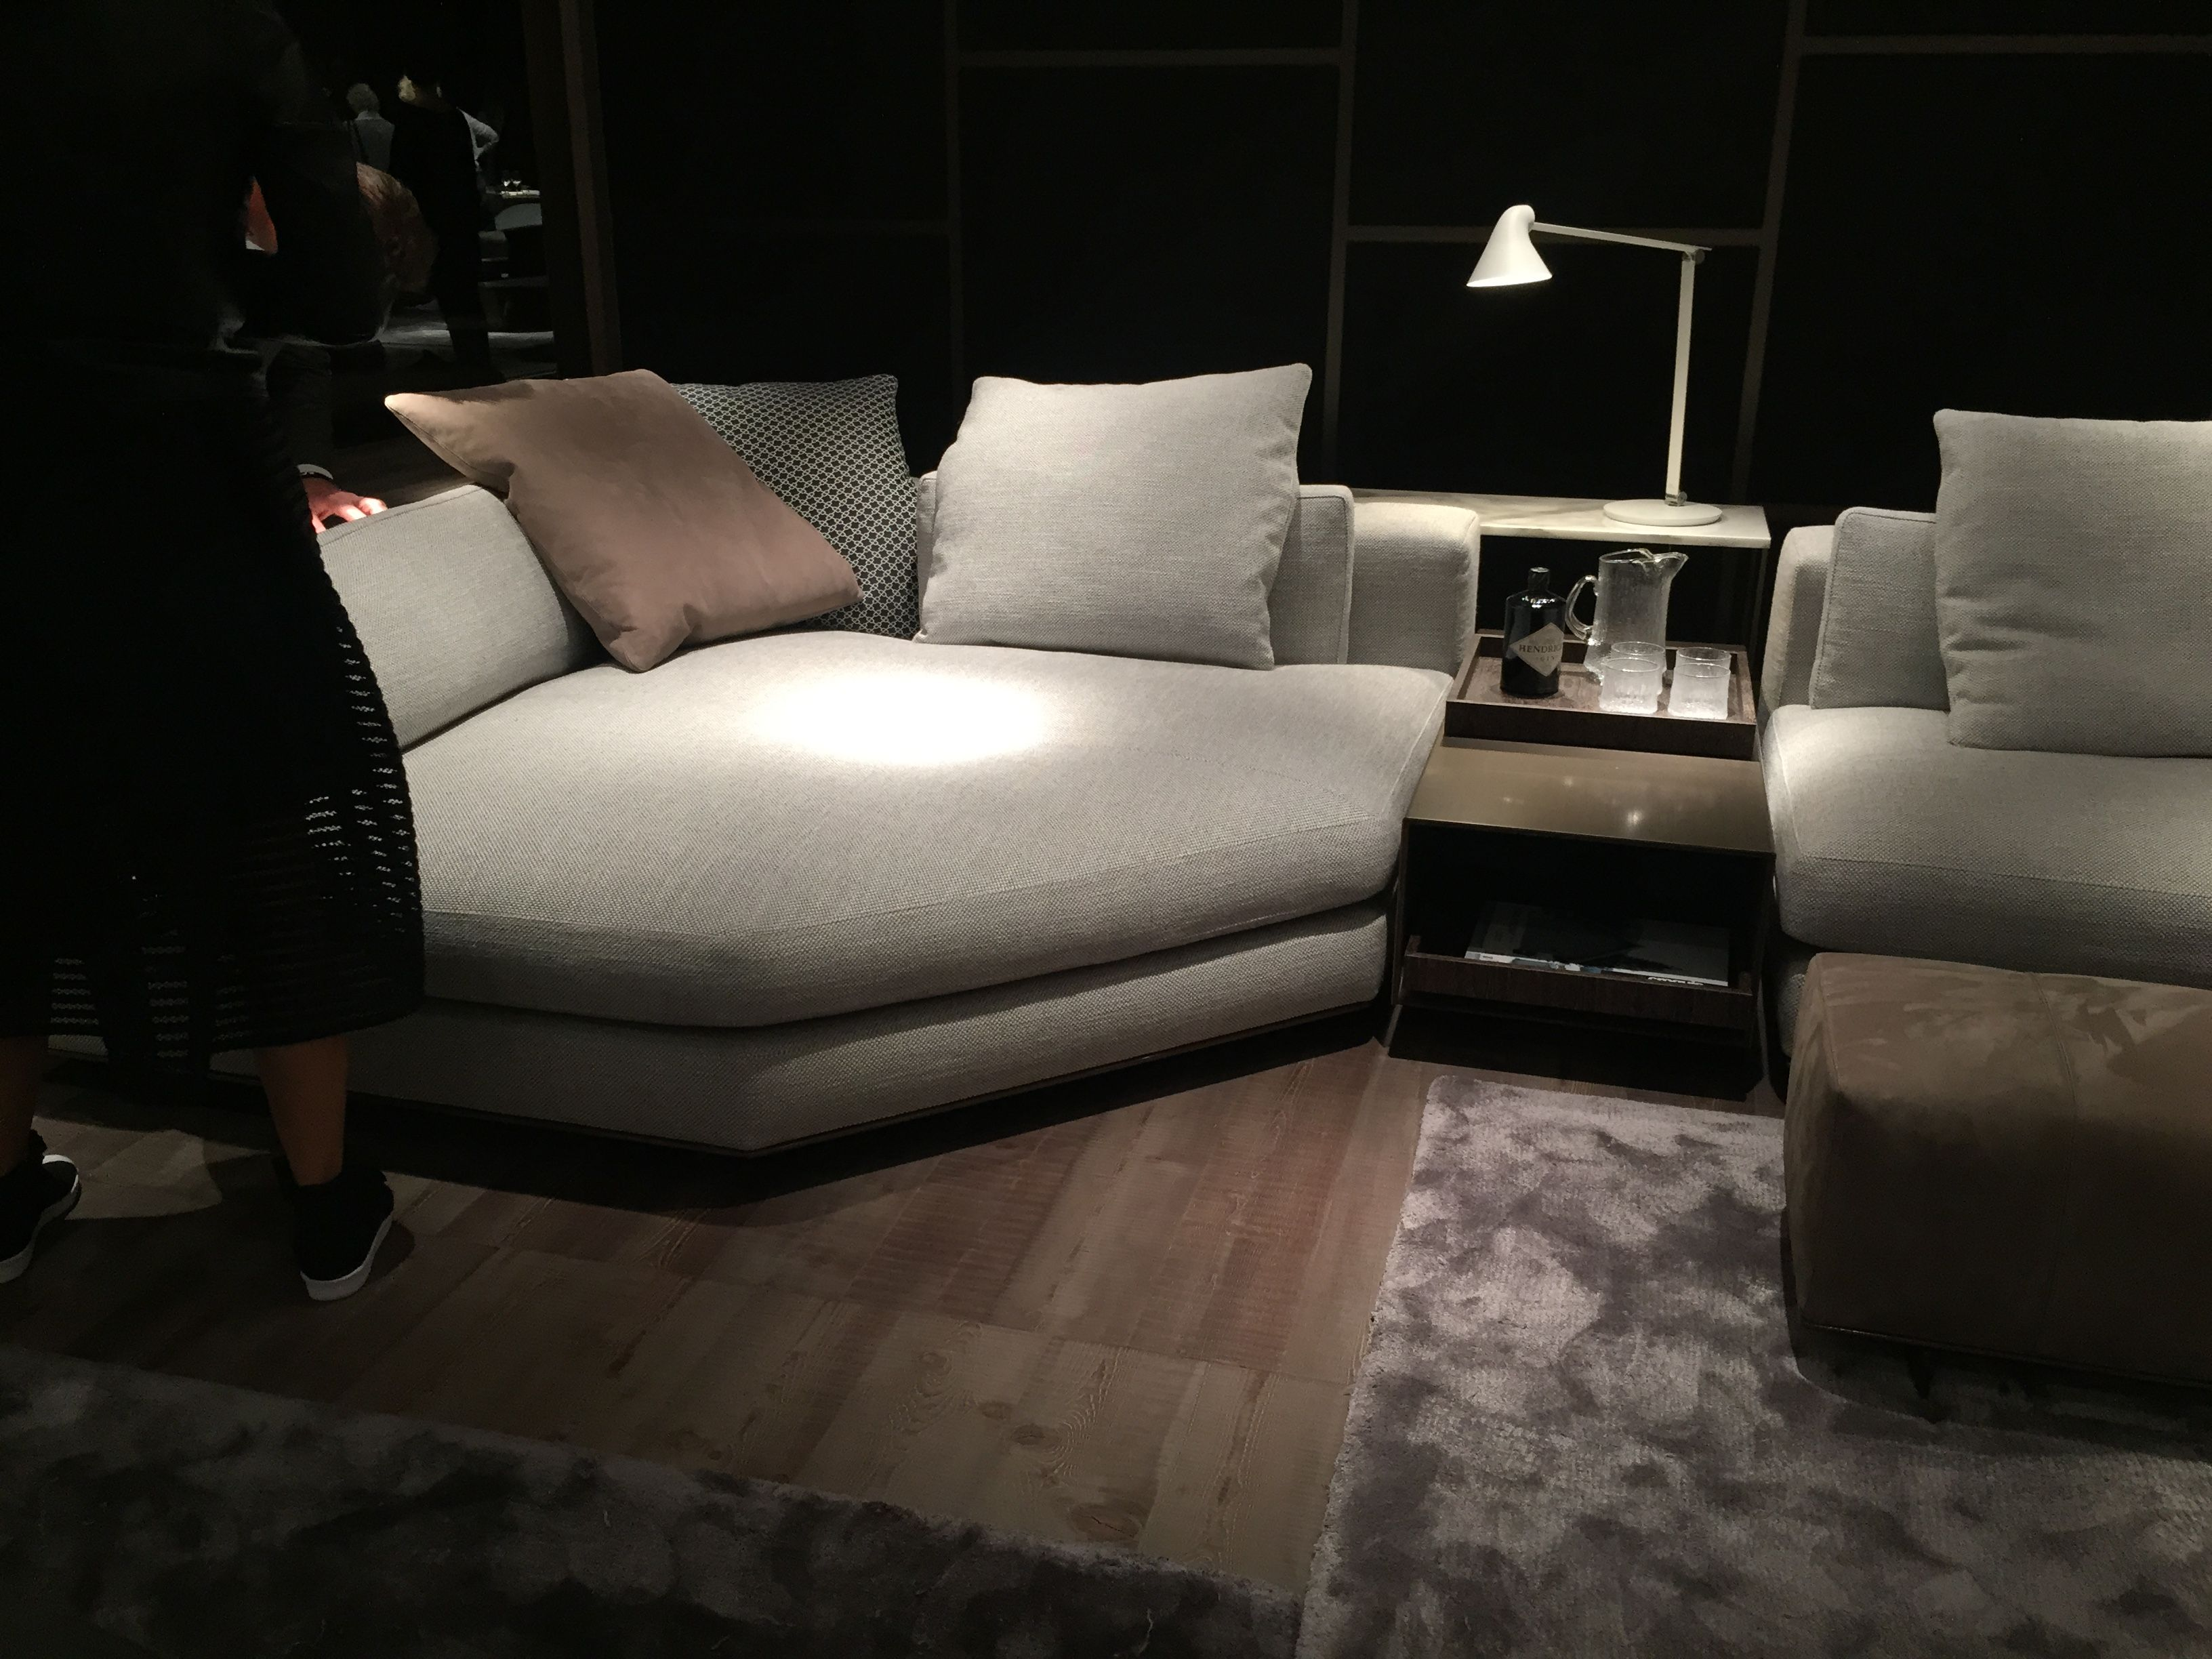 Minotti Freeman Seating Corner And Console And Arne Jacobsen Light Pull Out Tray In Bottom Of